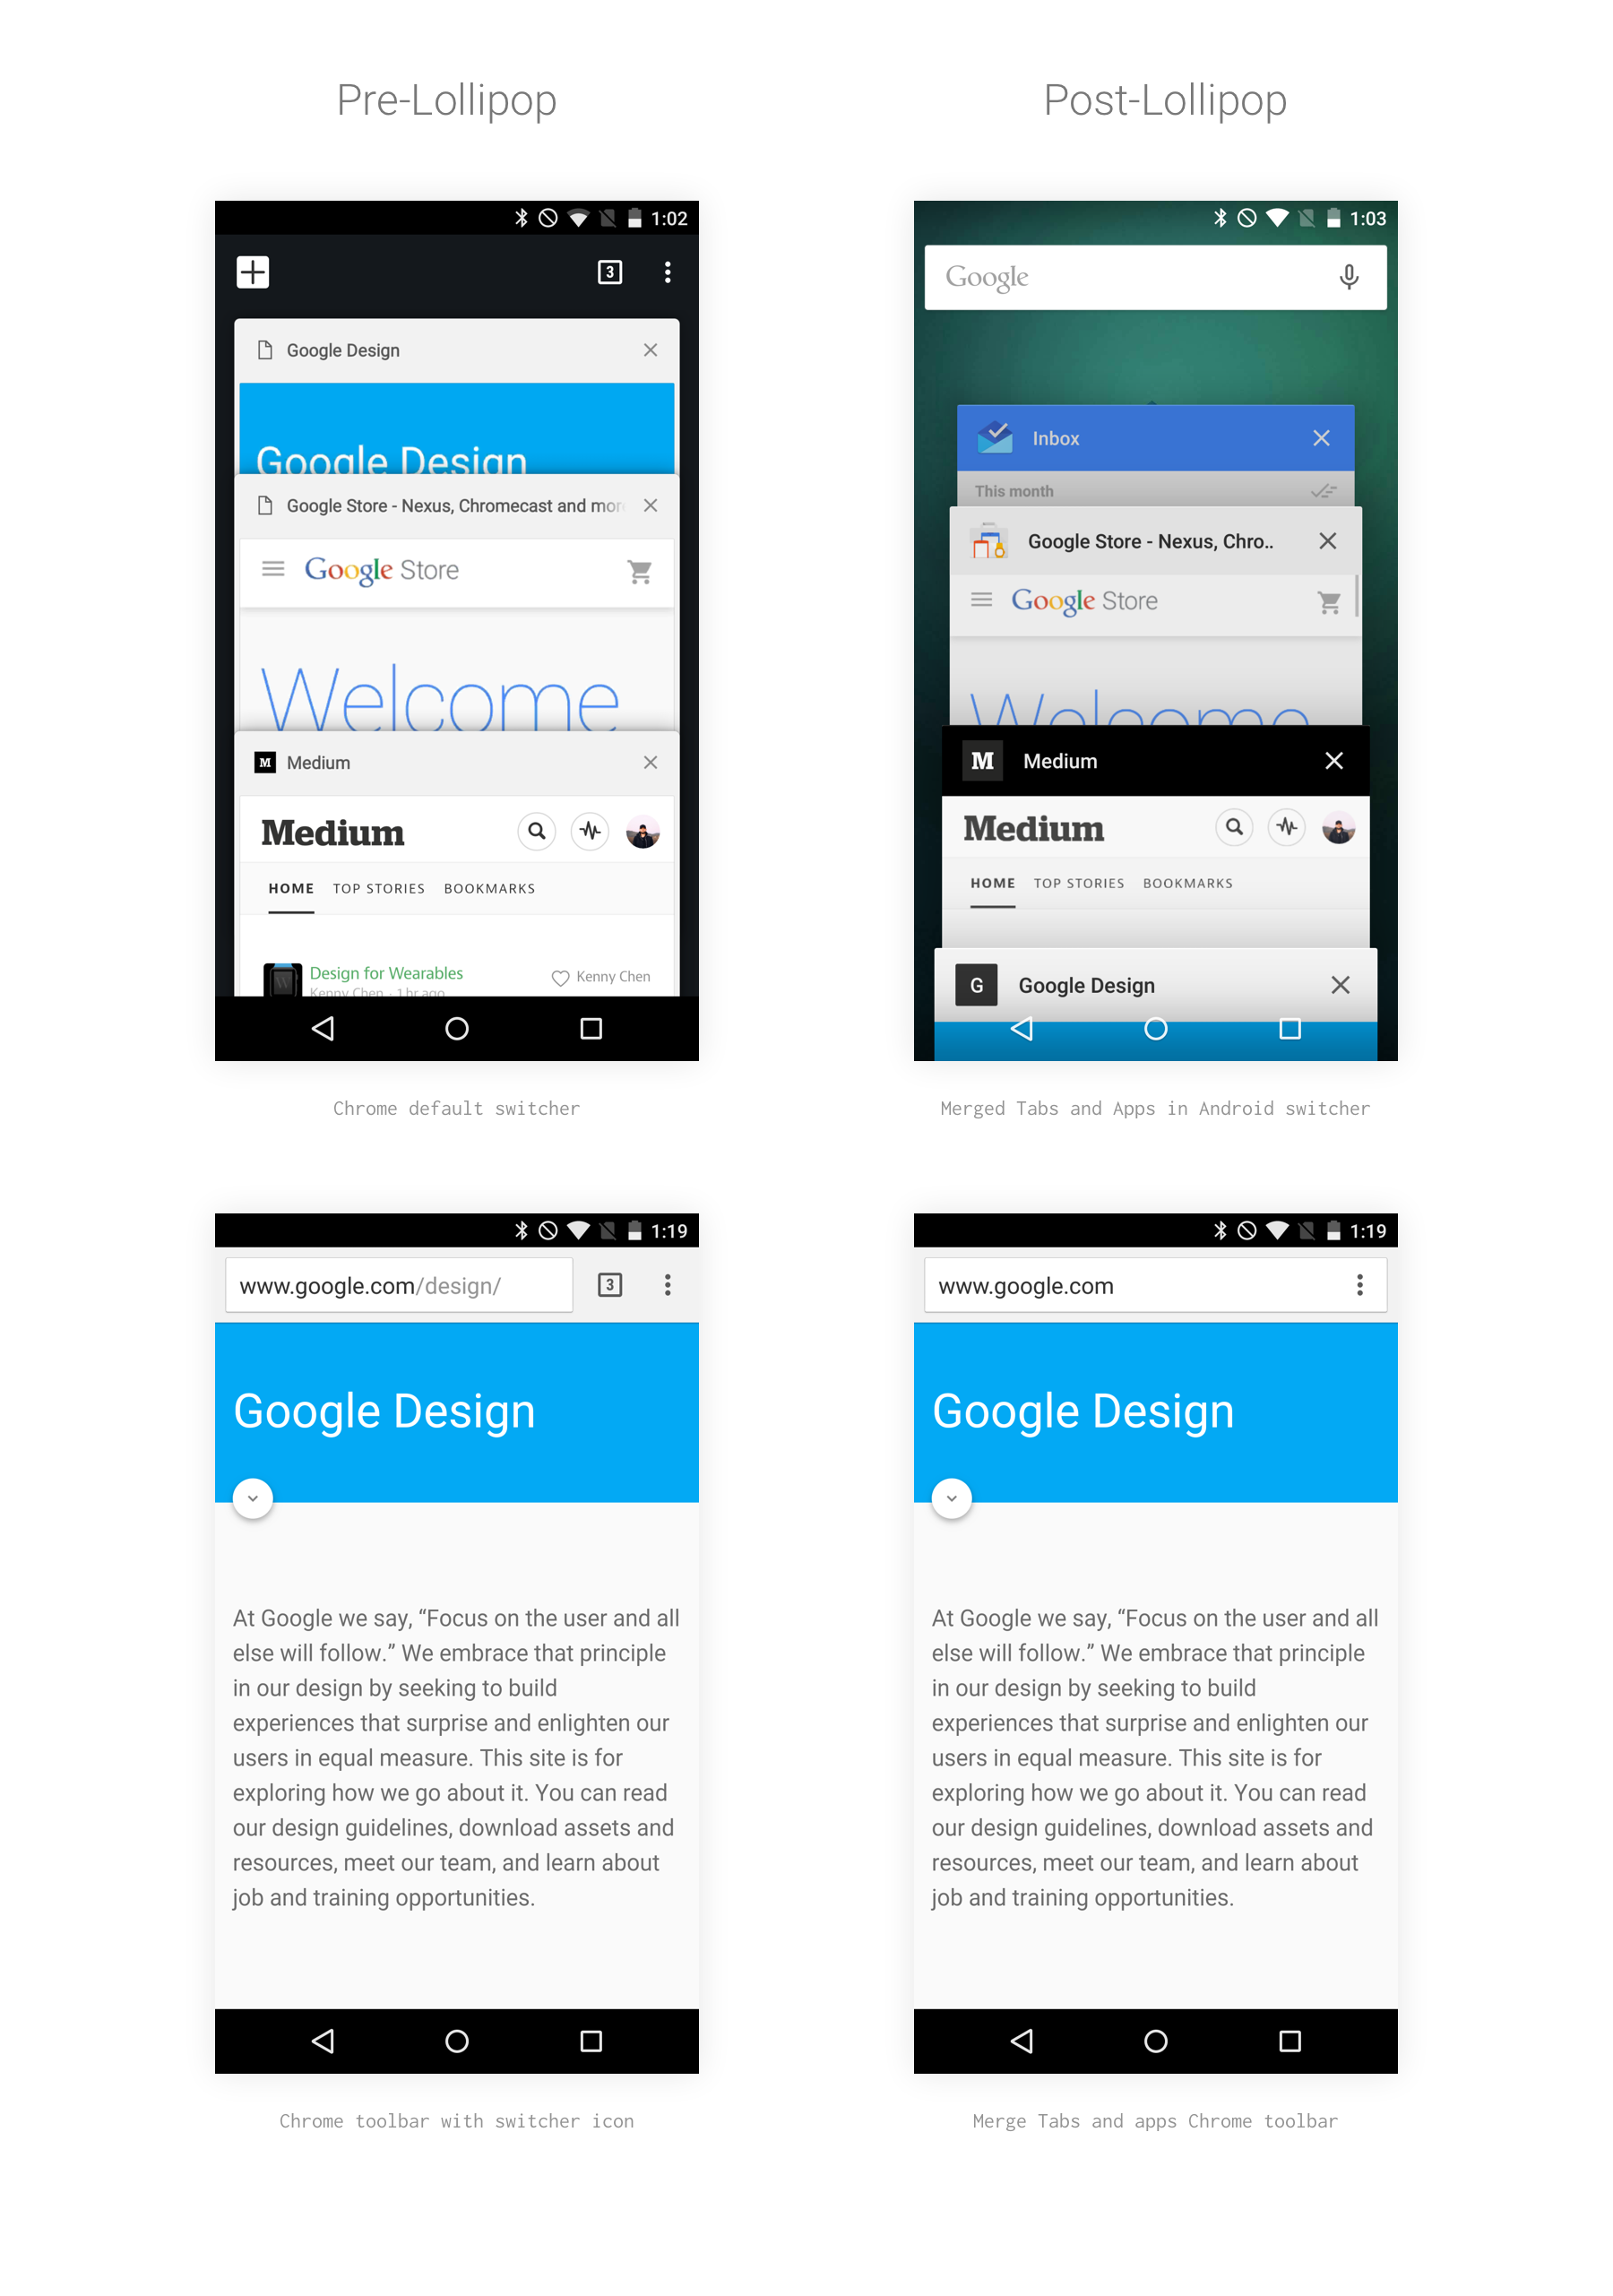 Redesigning Chrome Android  Part 1 of 2 - Google Design - Medium